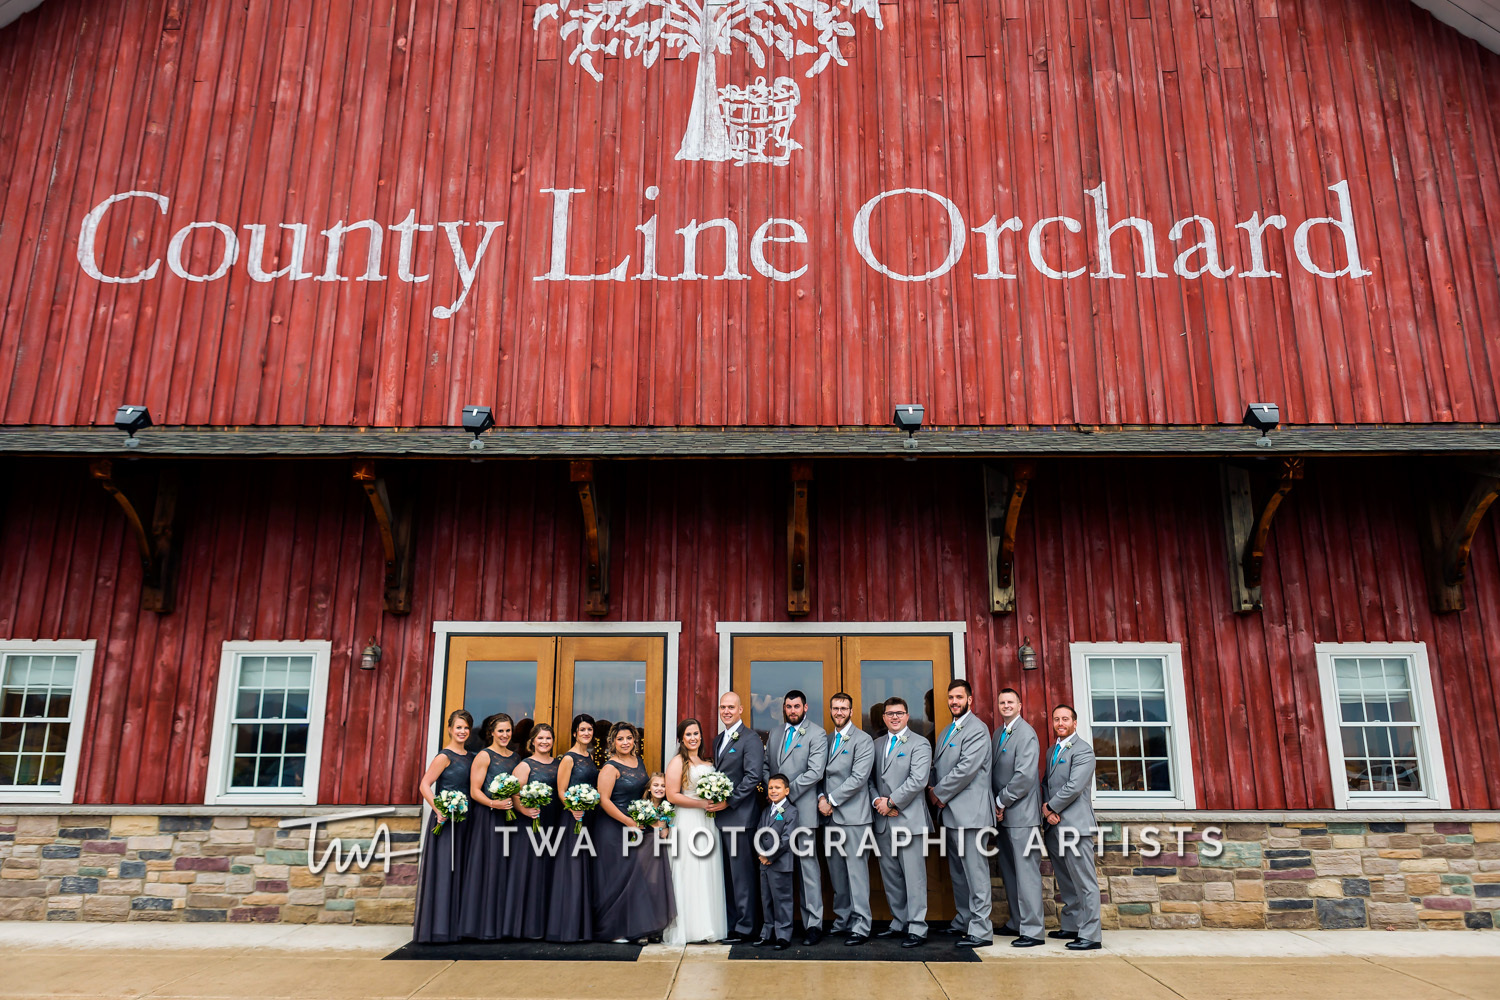 Chicago-Wedding-Photographer-TWA-Photographic-Artists-County-Line-Orchard_Bomba_Purcell_MiC_DR-0168